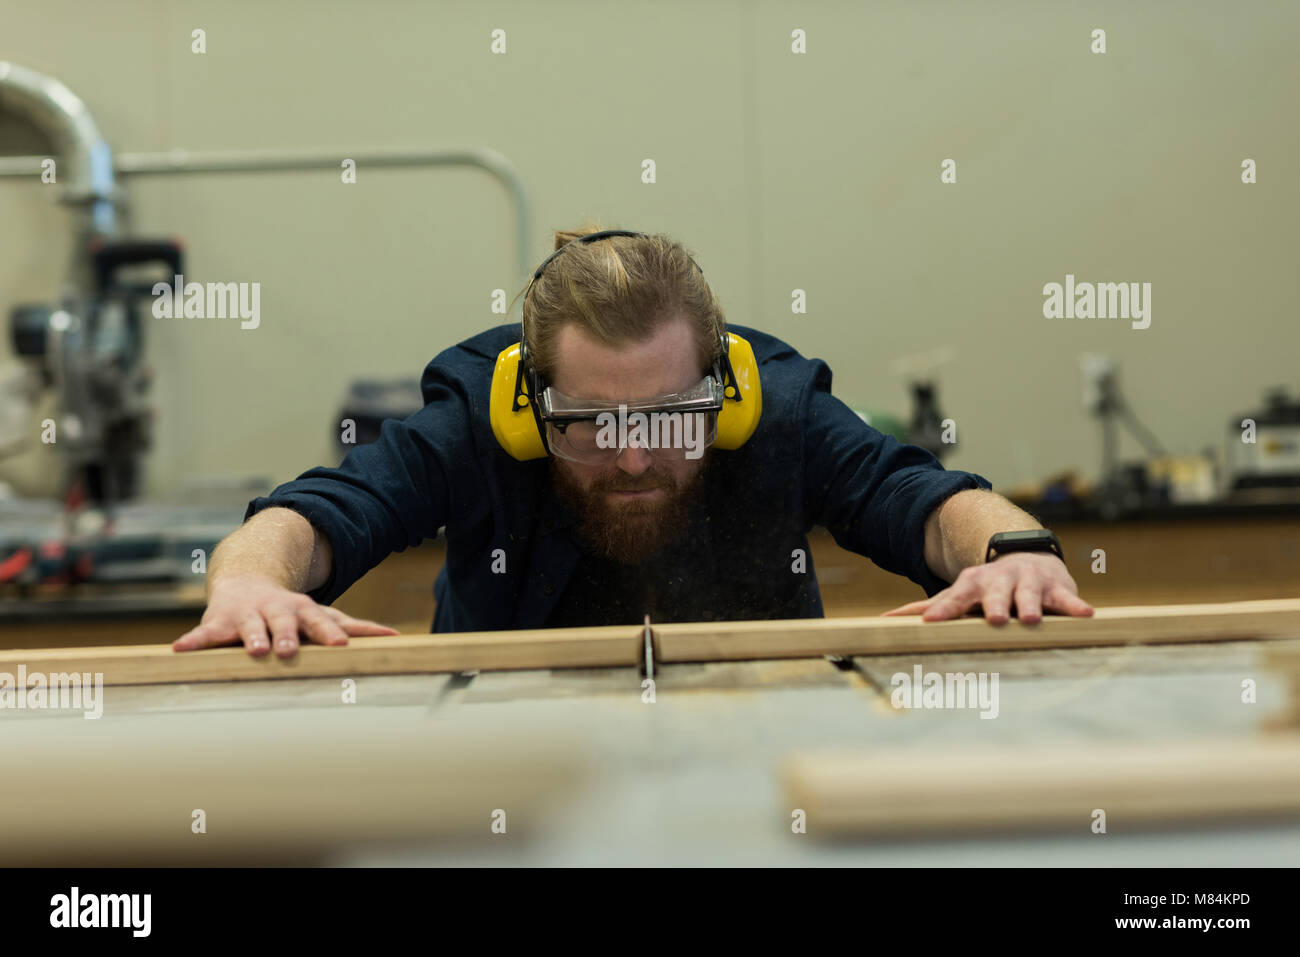 Male carpenter taking measurement of wood - Stock Image